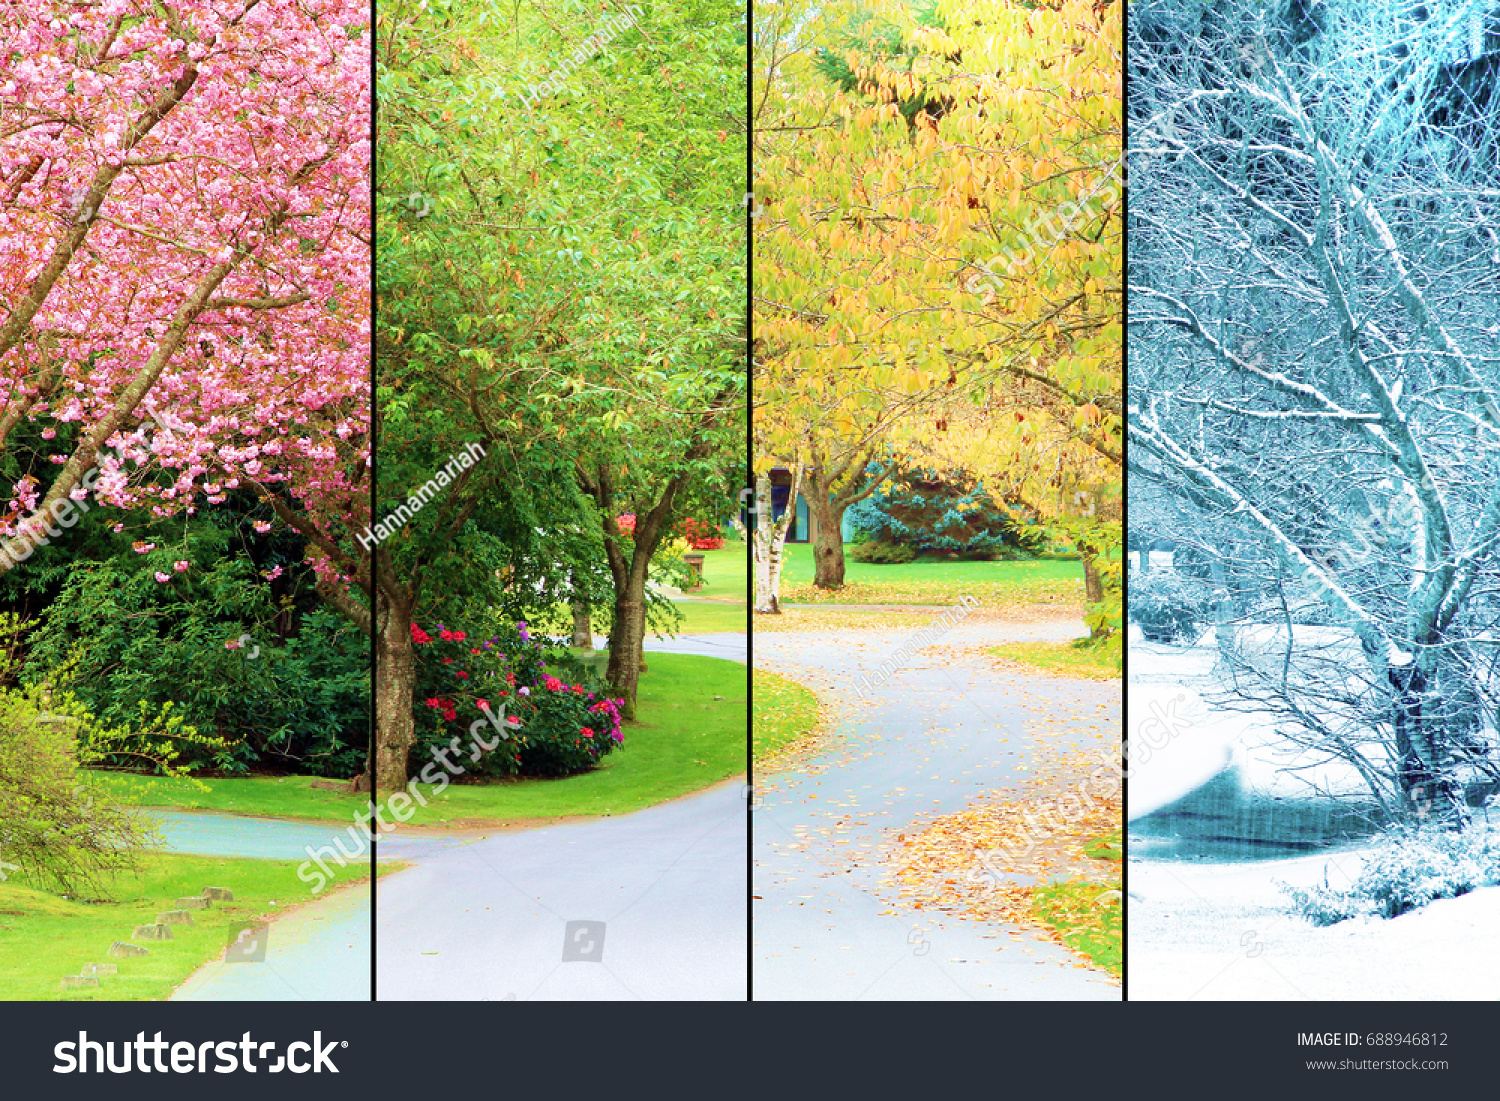 All Seasons Tree Lined Street Photographed All Four Stock Photo